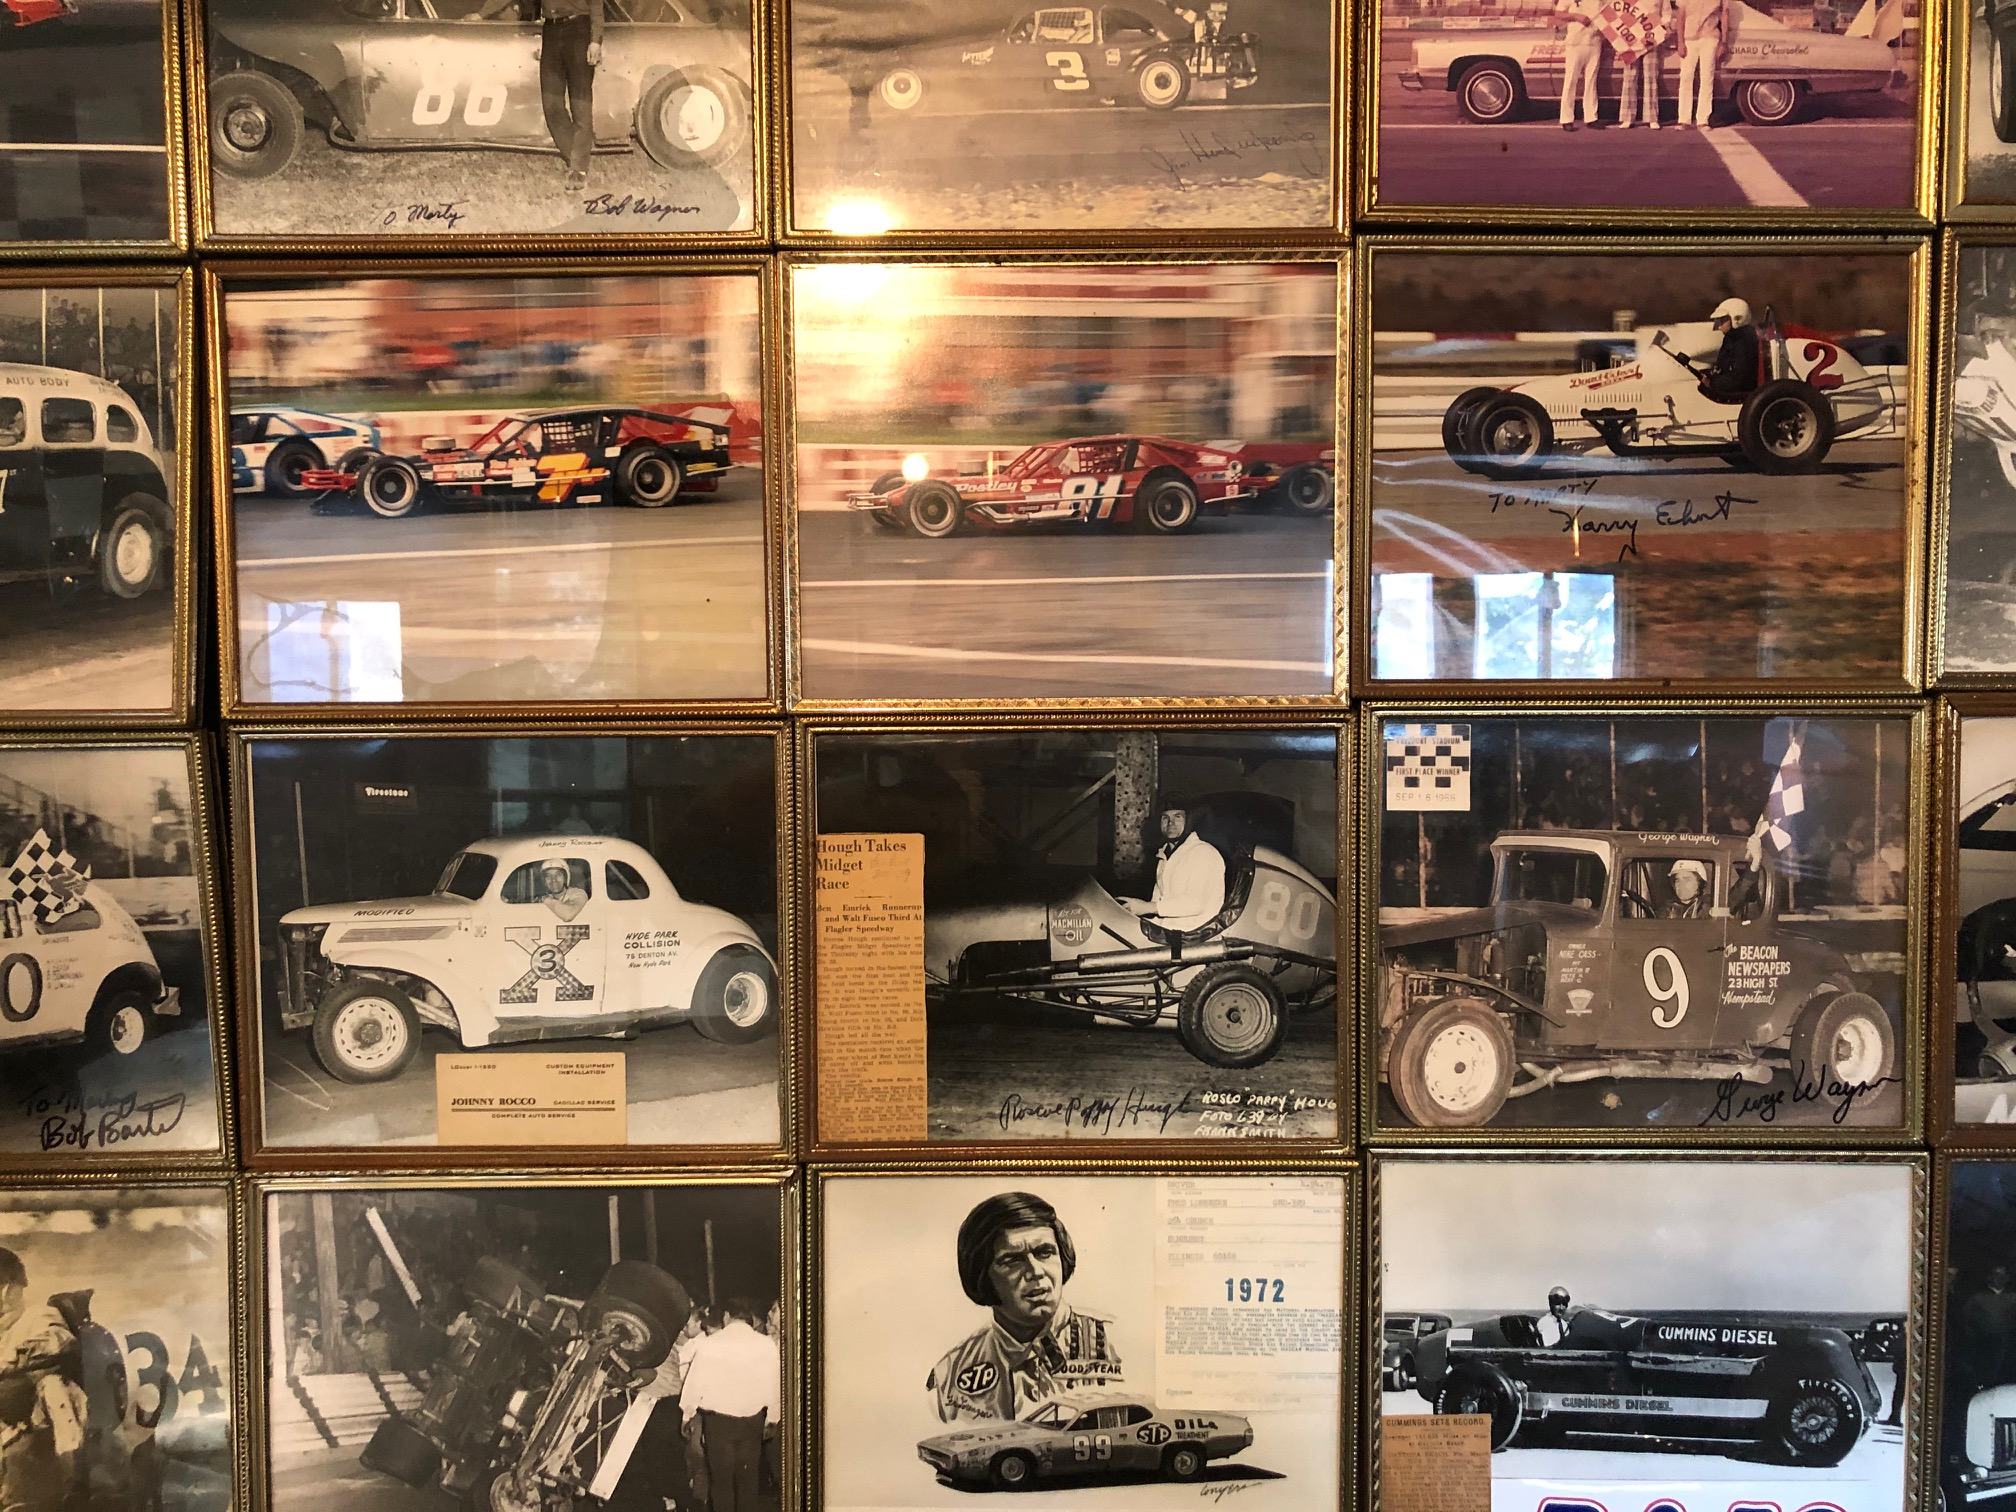 Himes Museum photo wall